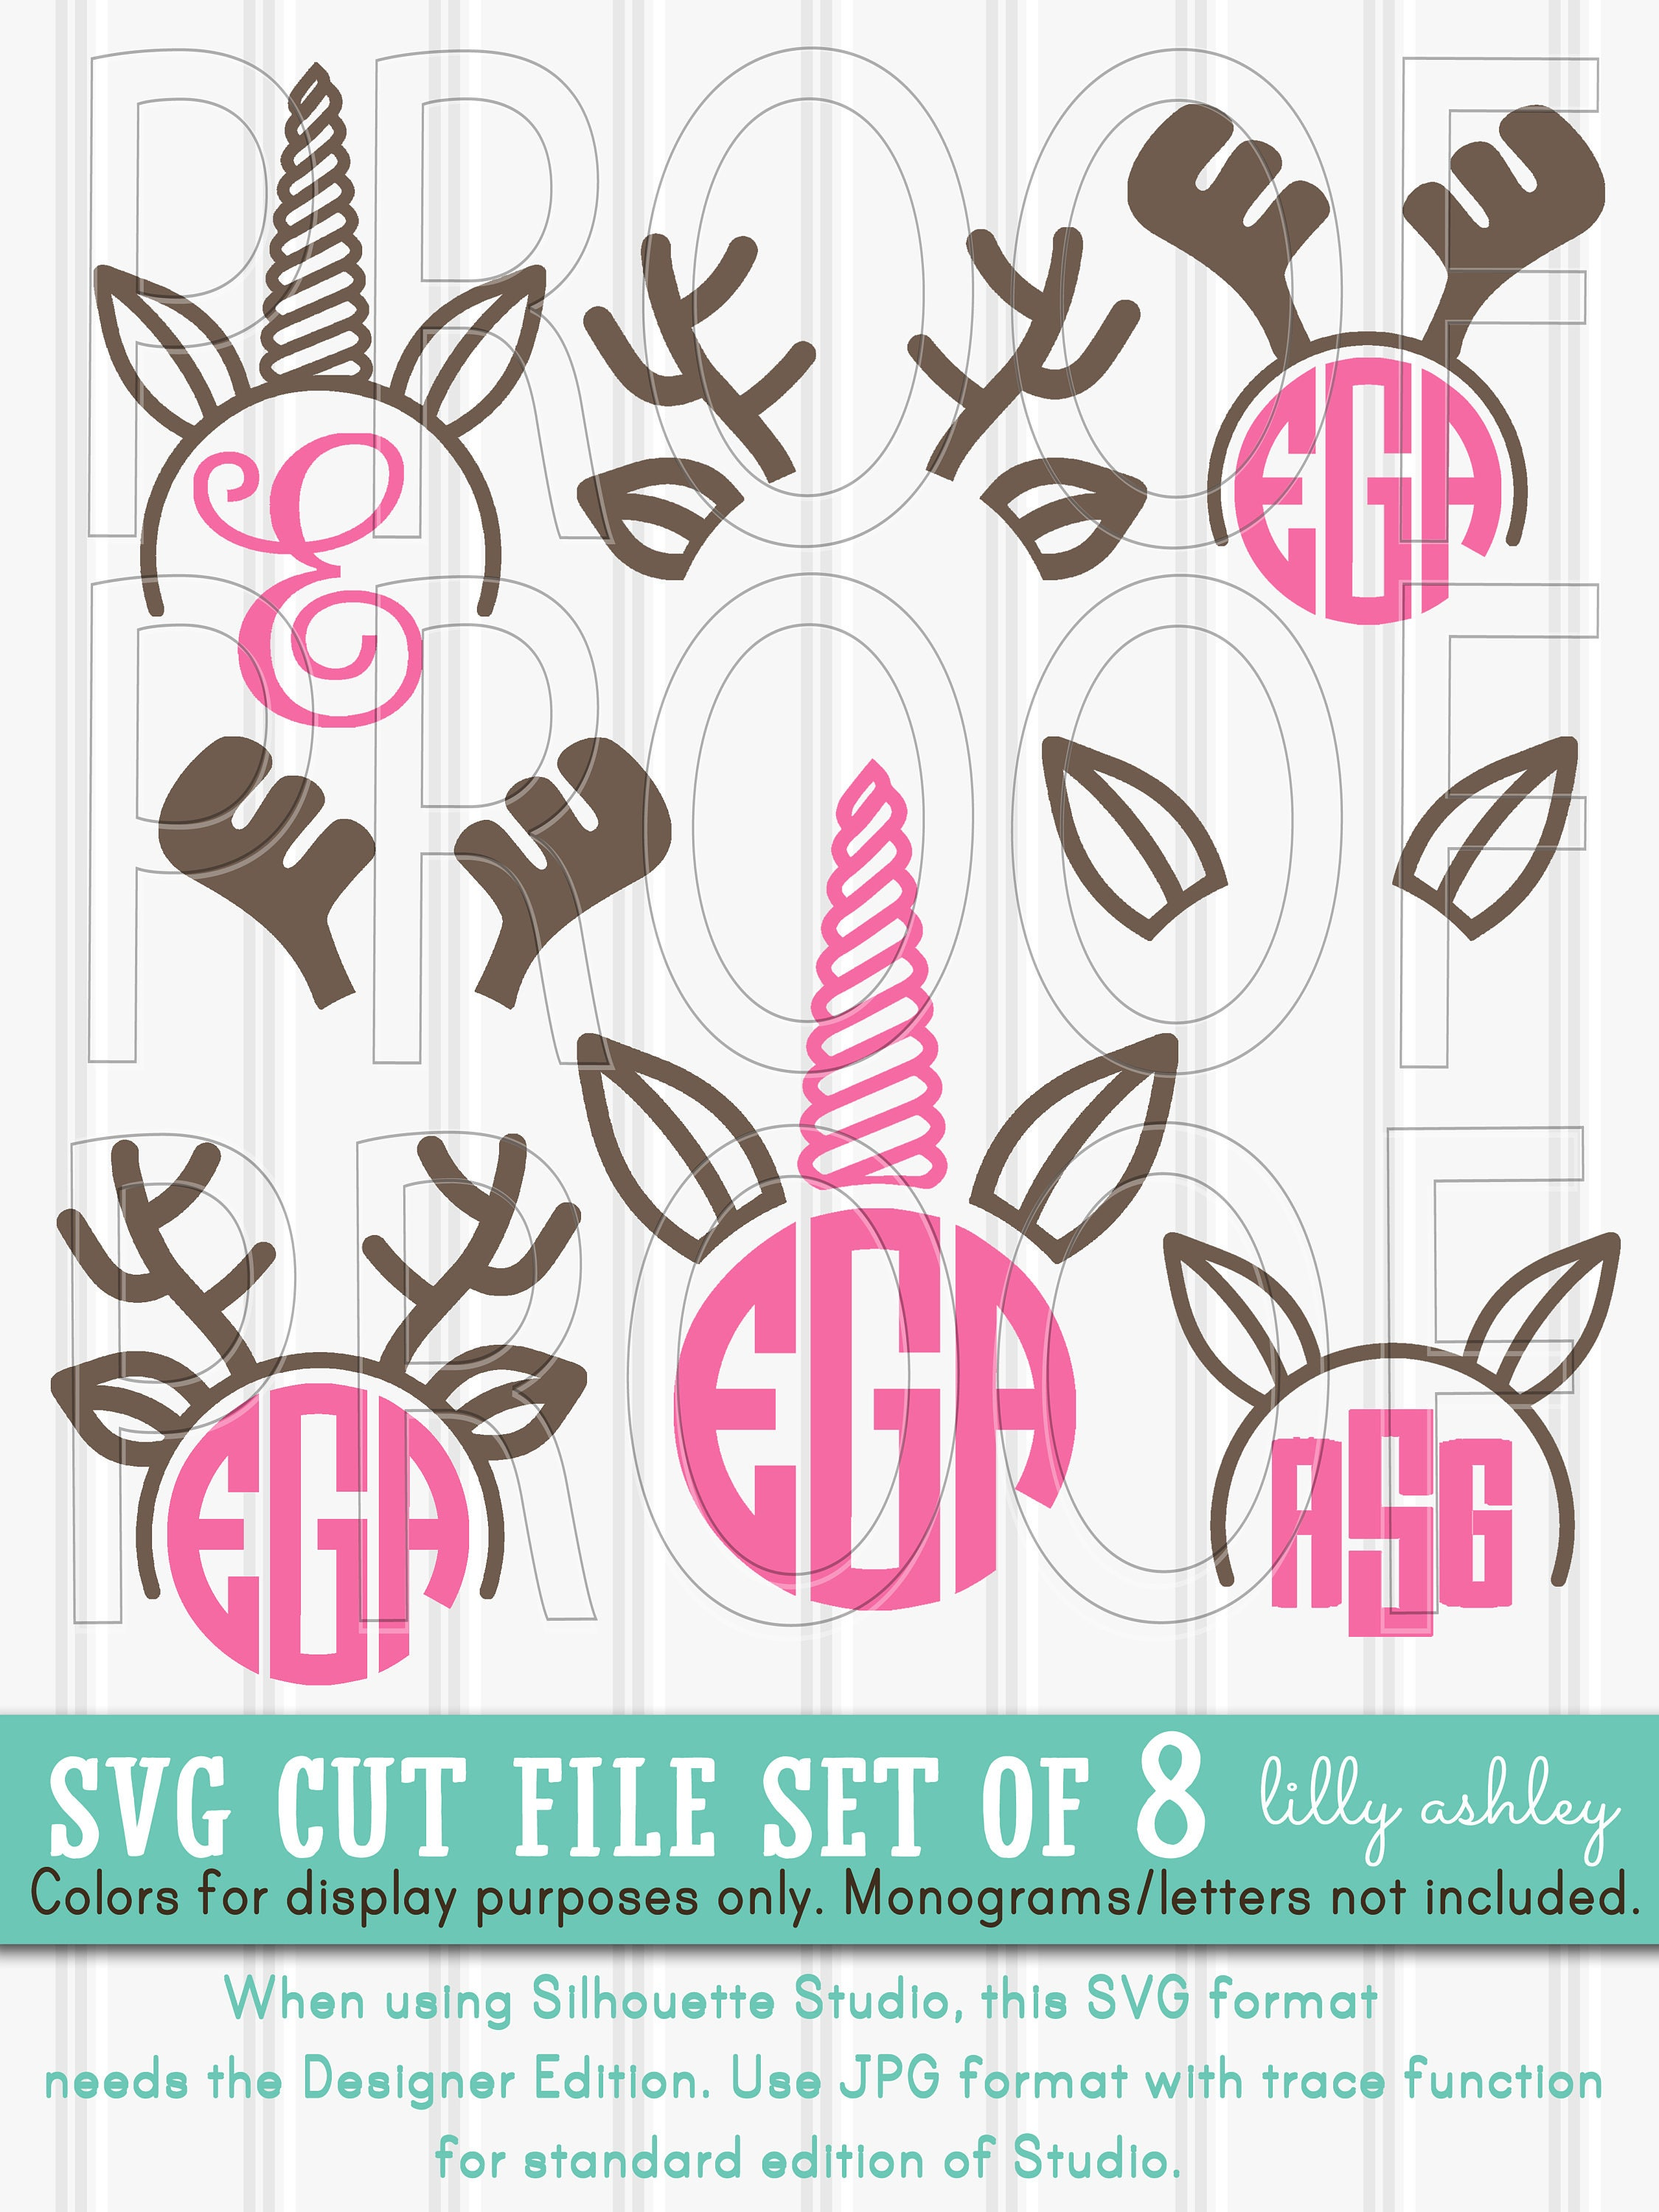 Monogram SVG Files Set of 8 cut files includes svg/png/jpg